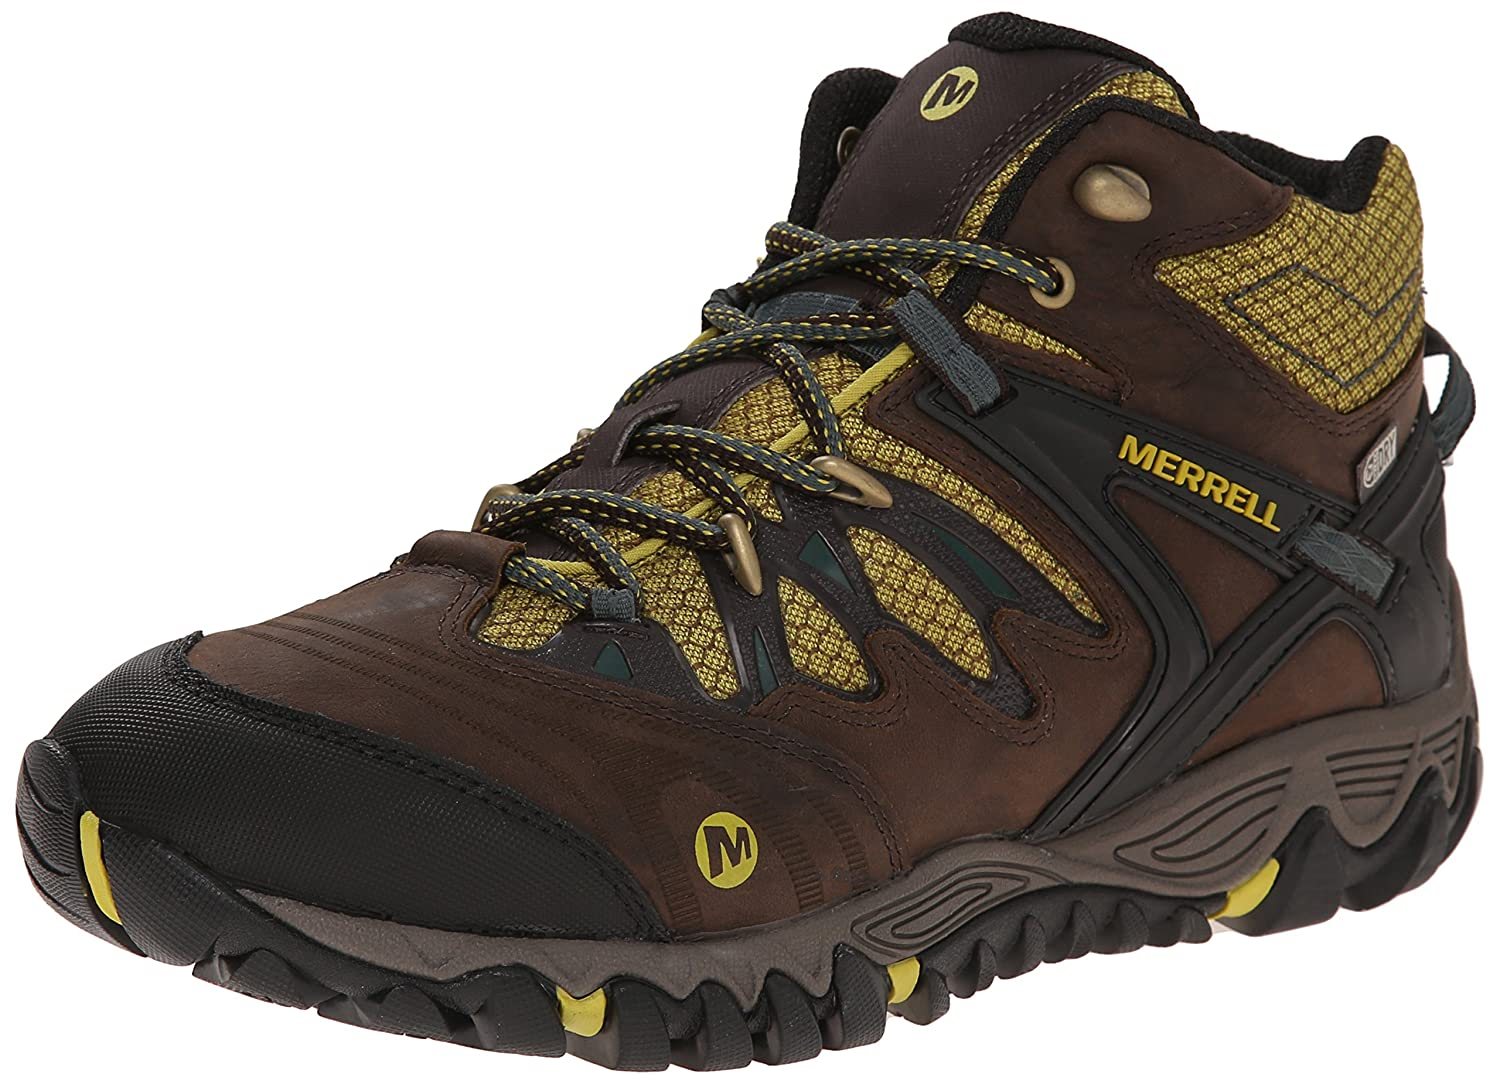 Merrell Men's All Out Blaze 2 Mid Waterproof Hiking Shoes Black